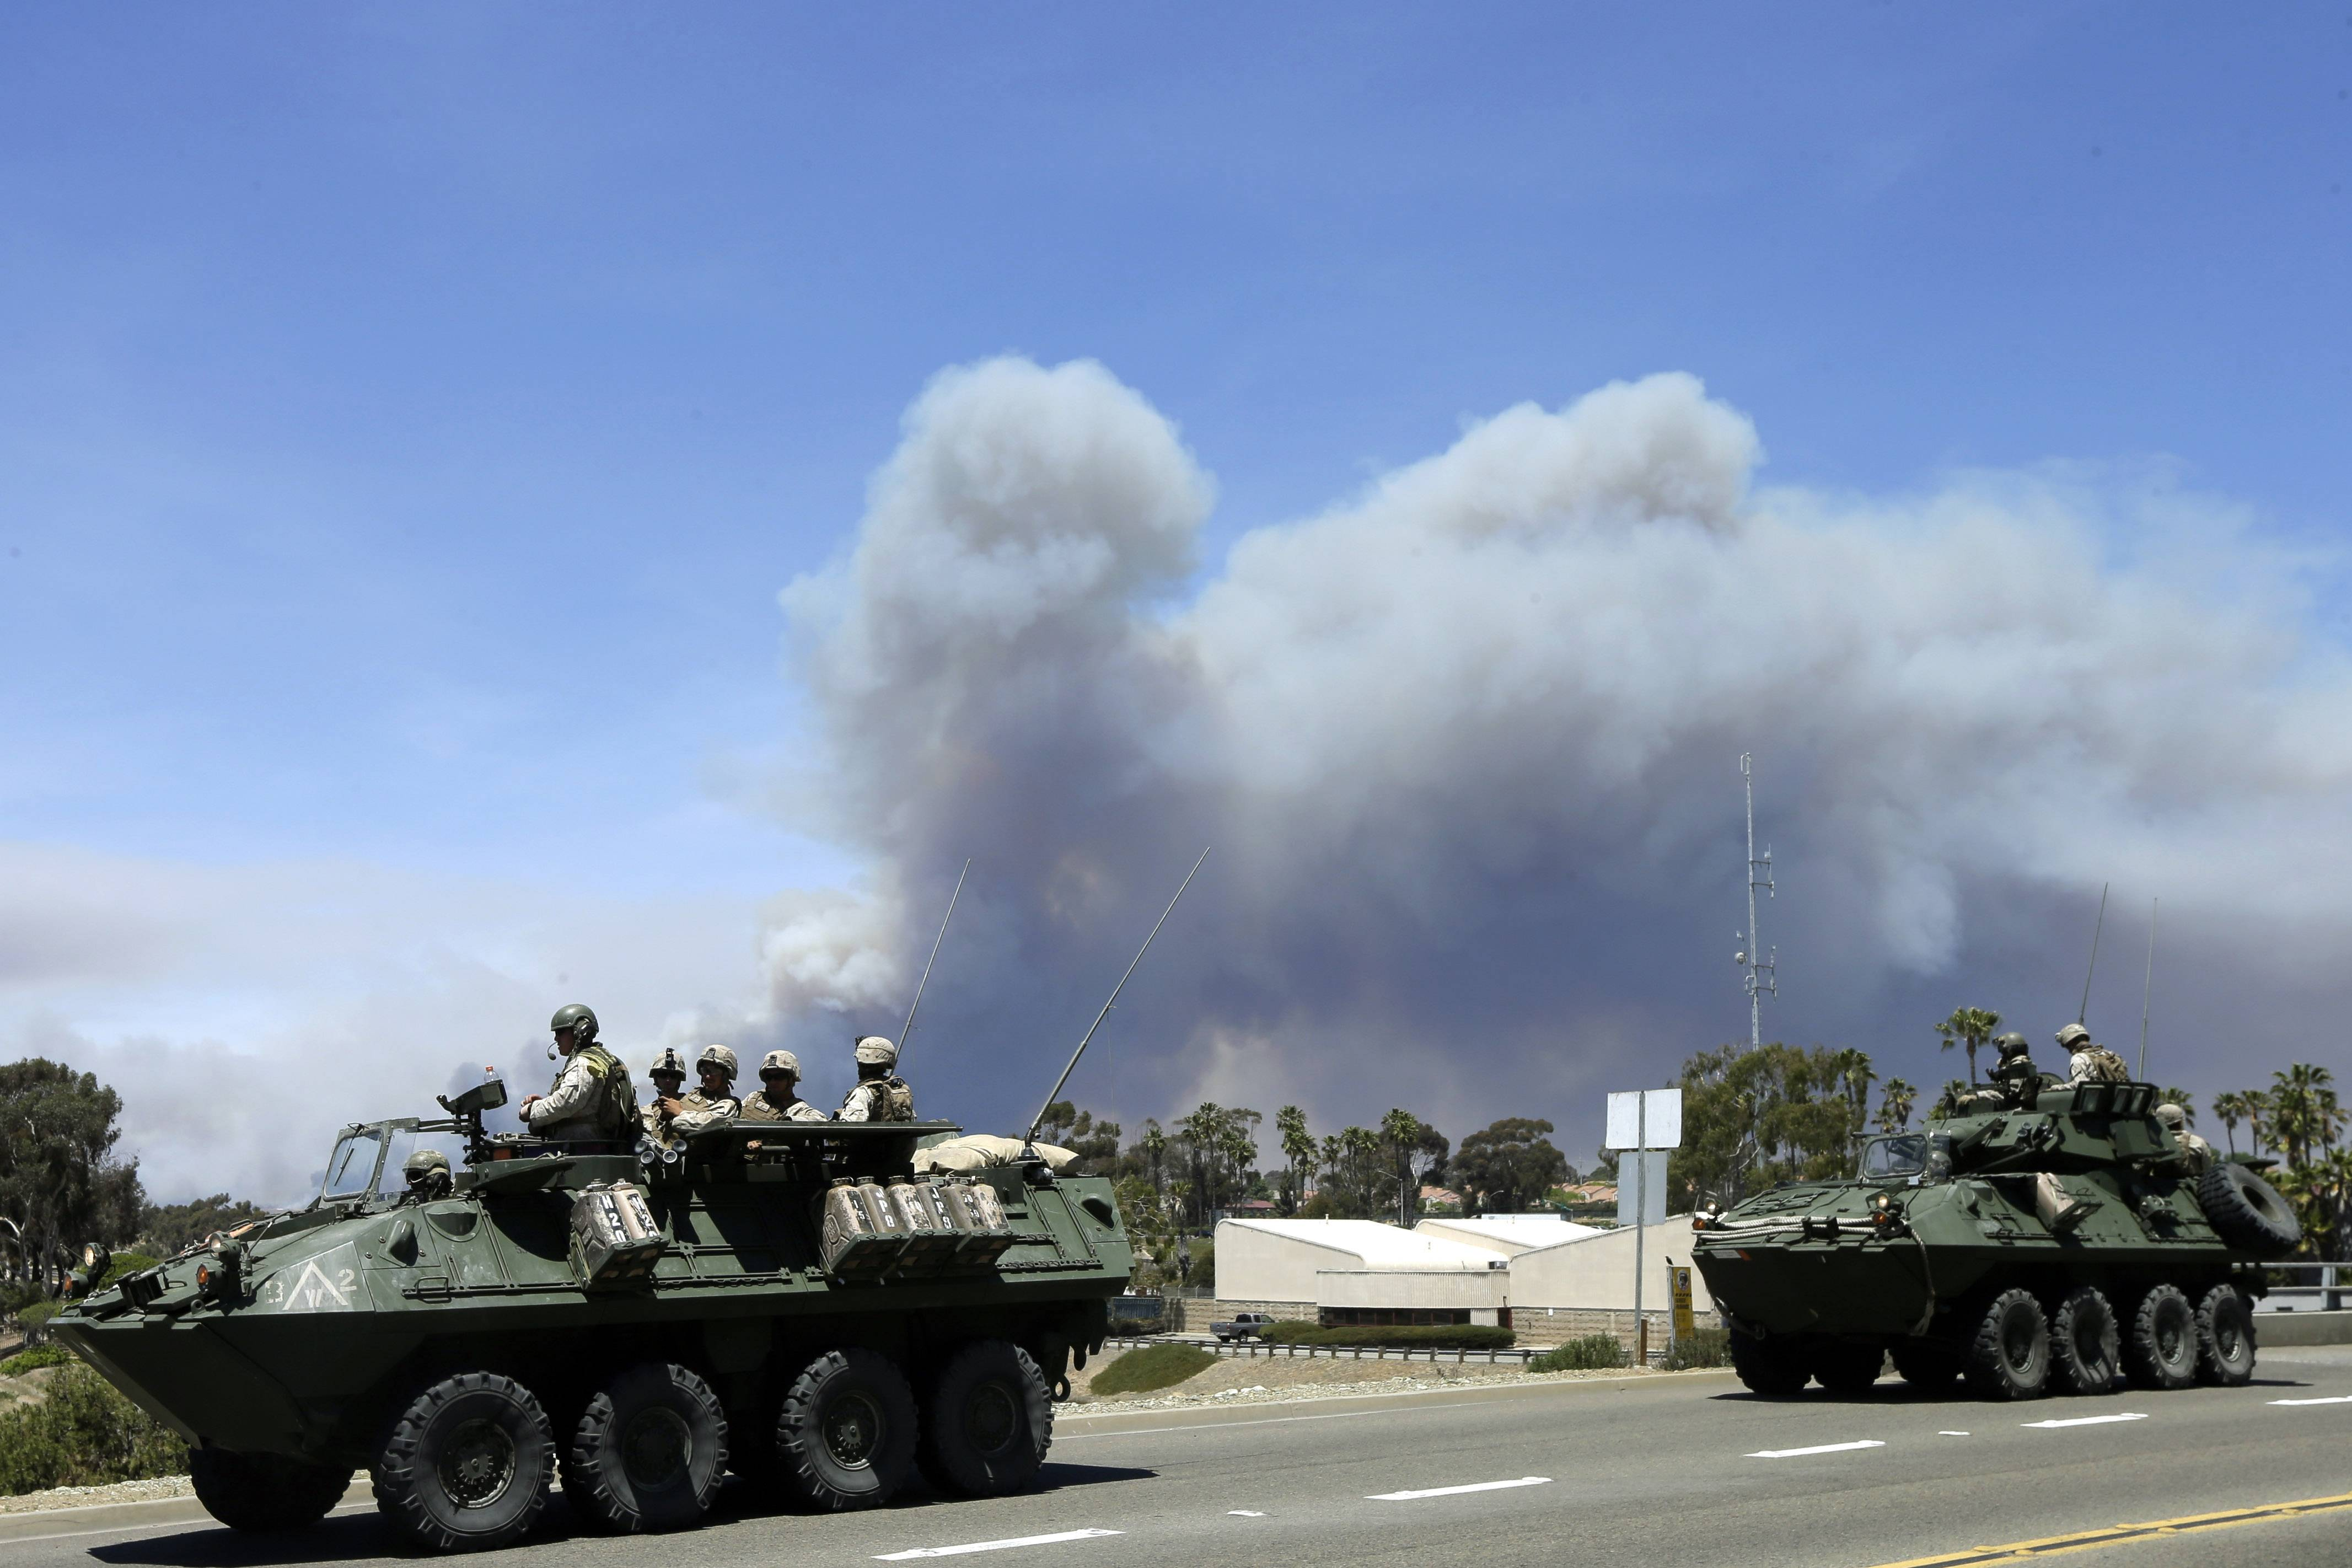 Marines move military vehicles near the entrance to Marine Corps Camp Pendleton in front of smoke plumes from the Las Pulgas wildfire burning on the base last week.